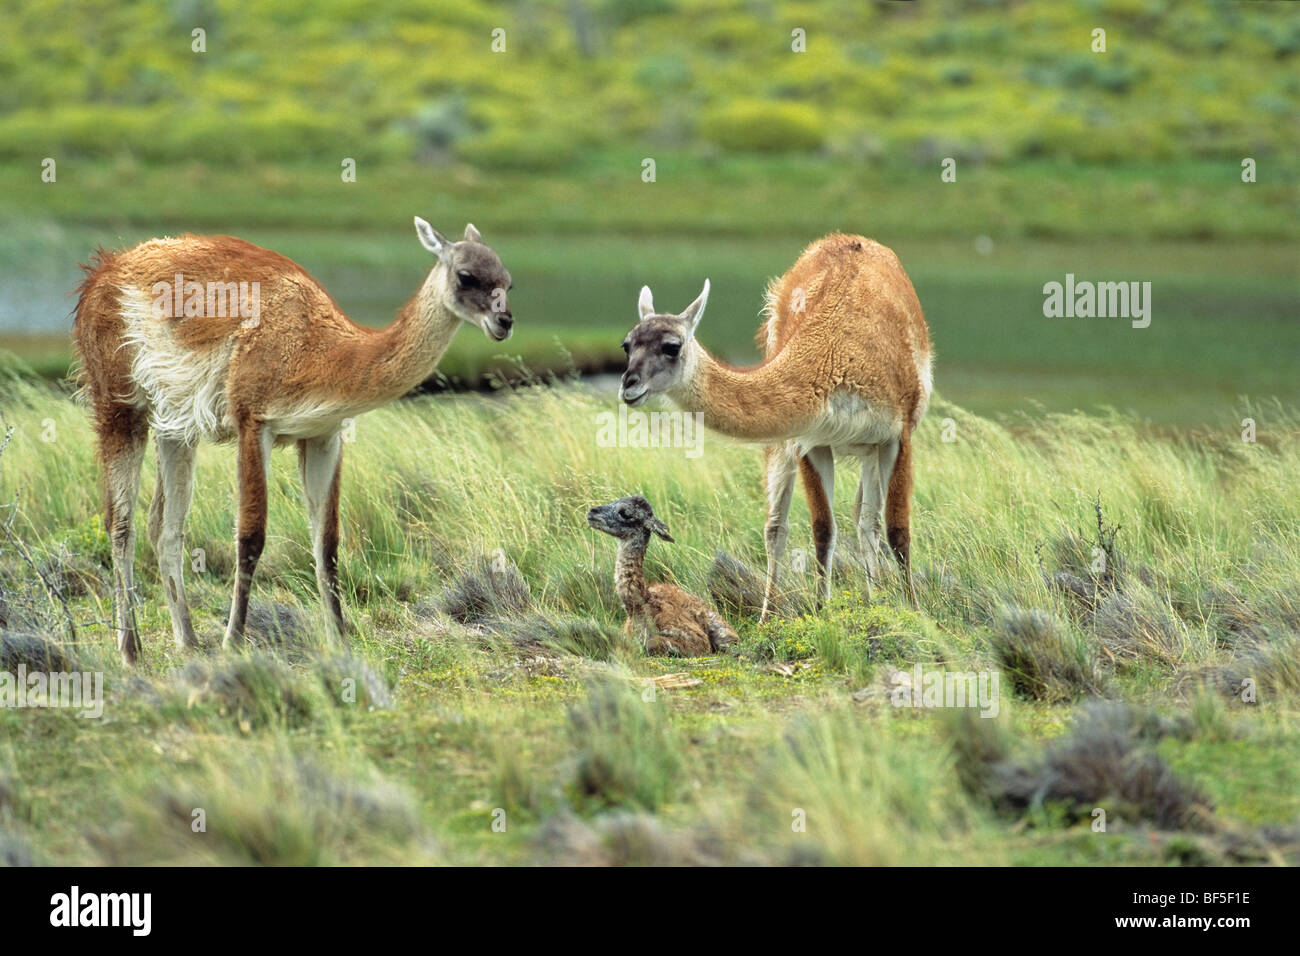 Guanacos (Lama guanicoe) with newborn, Torres del Paine National Park, Patagonia, Chile, South America - Stock Image